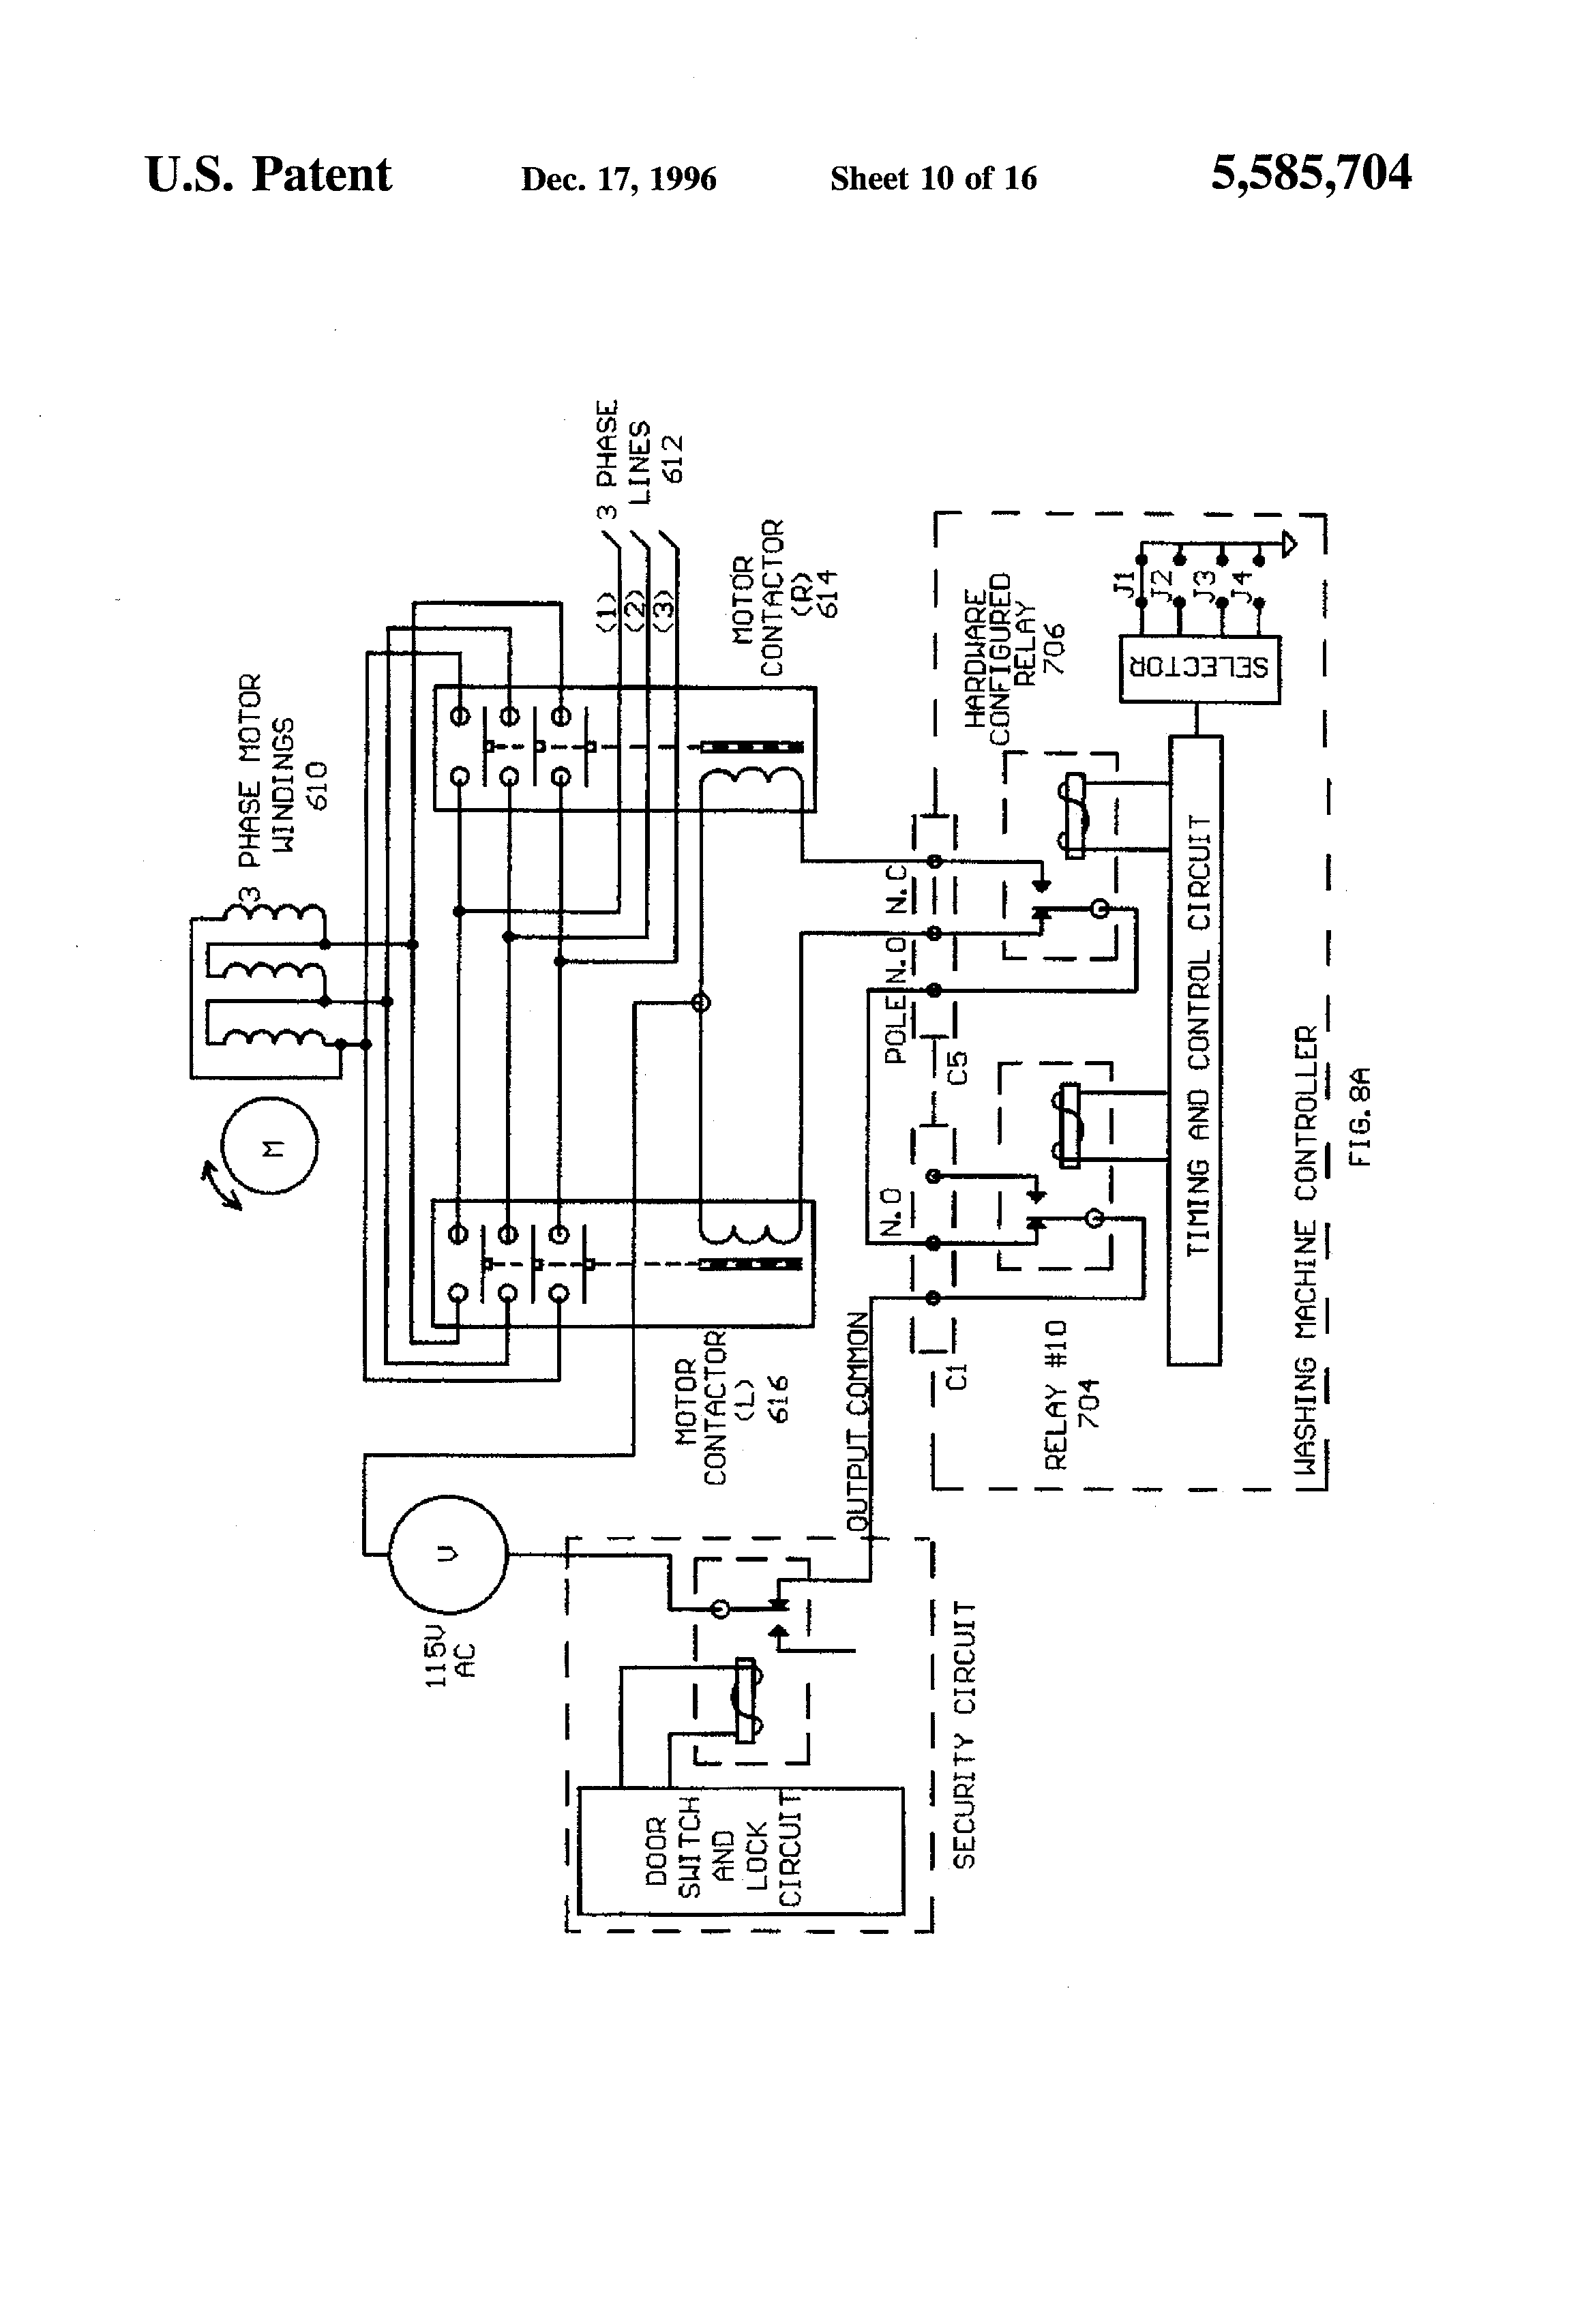 Whirlpool Thermistor Wiring Diagram Free For You Motor Control Machine Blogs Rh 8 16 3 Restaurant Freinsheimer Hof De Plc Input Card Carrier Humidistat